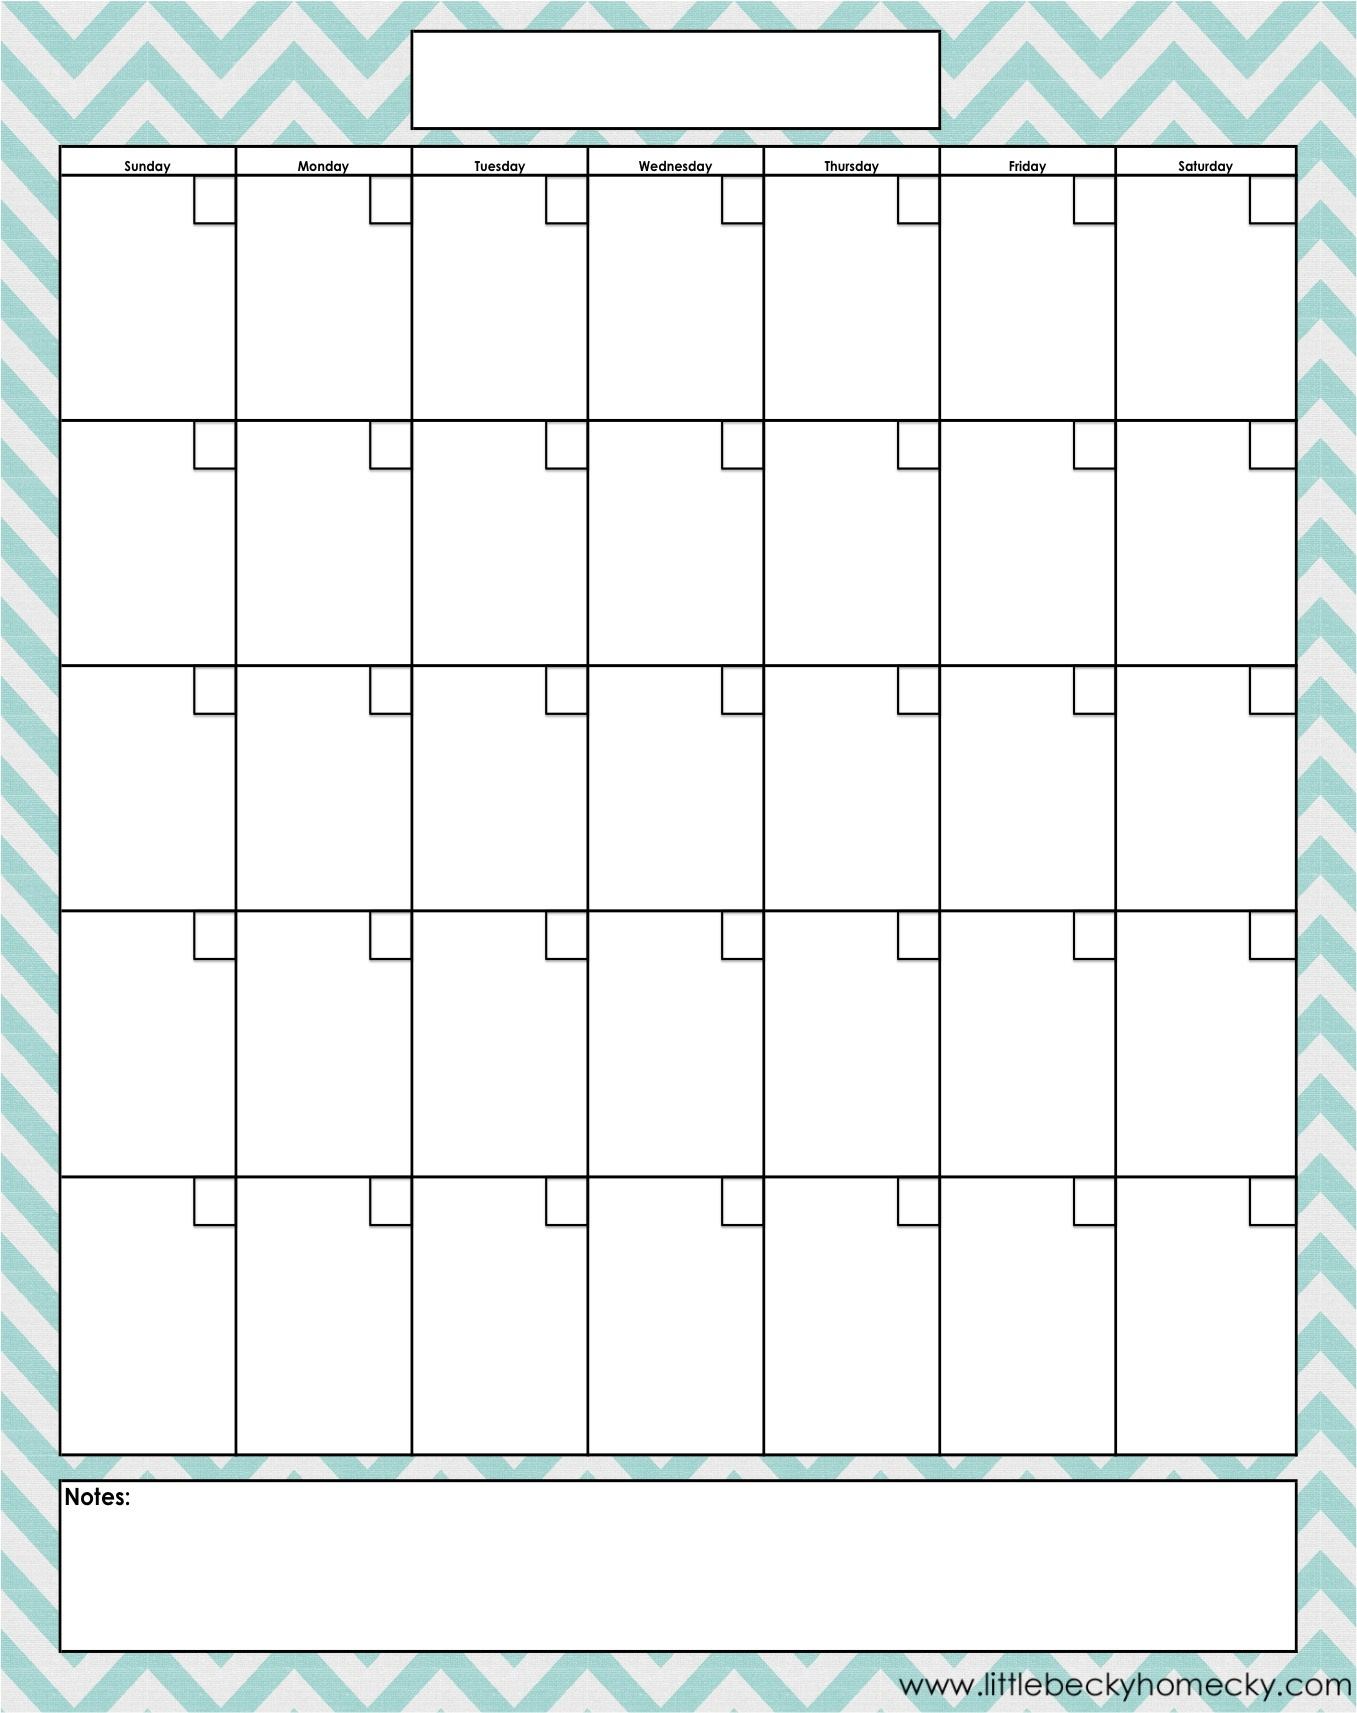 Blank-Monthly-Calendar-Printable-Pdfs  Blank Printable Calendar By Month With Notes